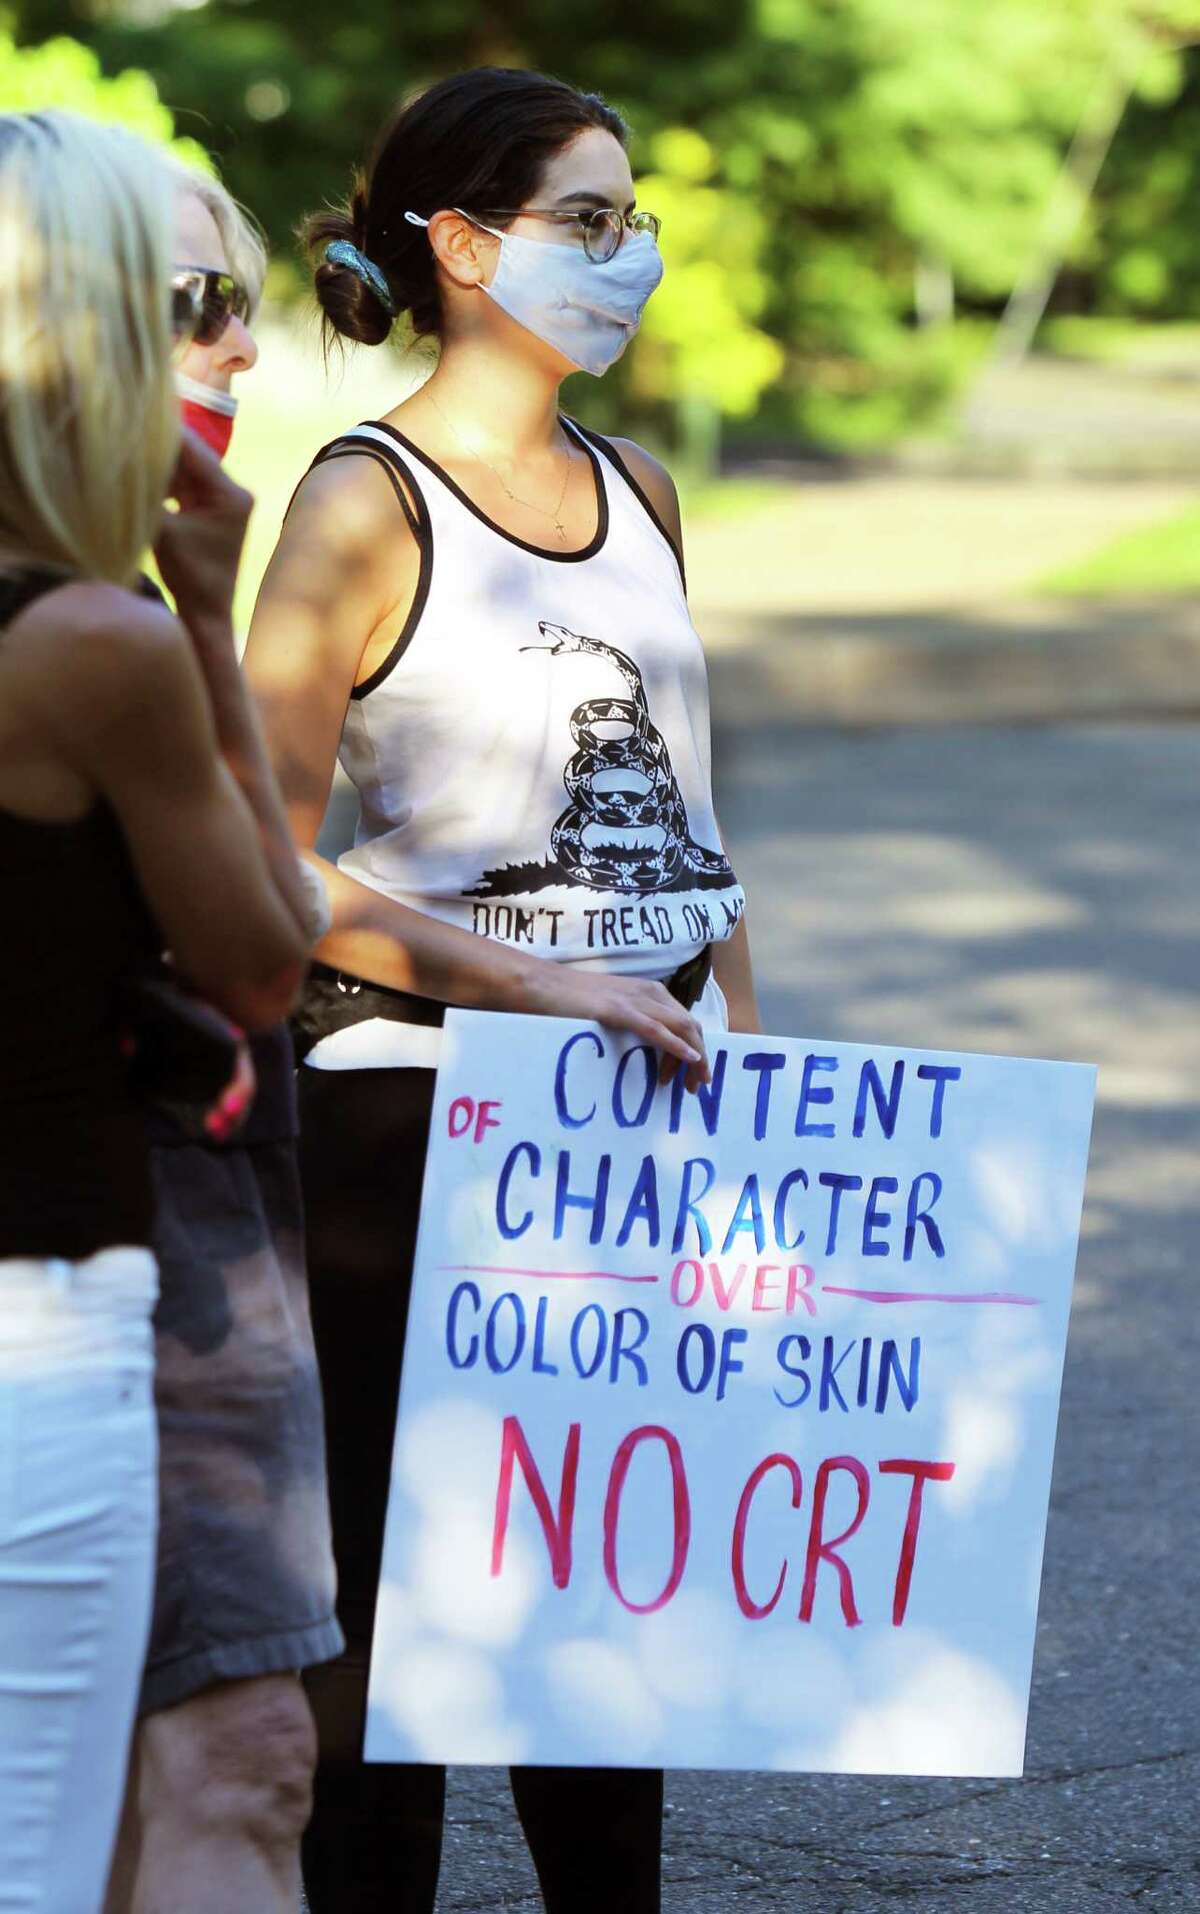 A member of Greenwich Patriots attends a BOE meeting at Central Middle School in Greenwich, Conn., on Thursday June 17, 2021. Members are urging people to attend and speak at public comment to protest masking, vaccinations for students and critical race theory.